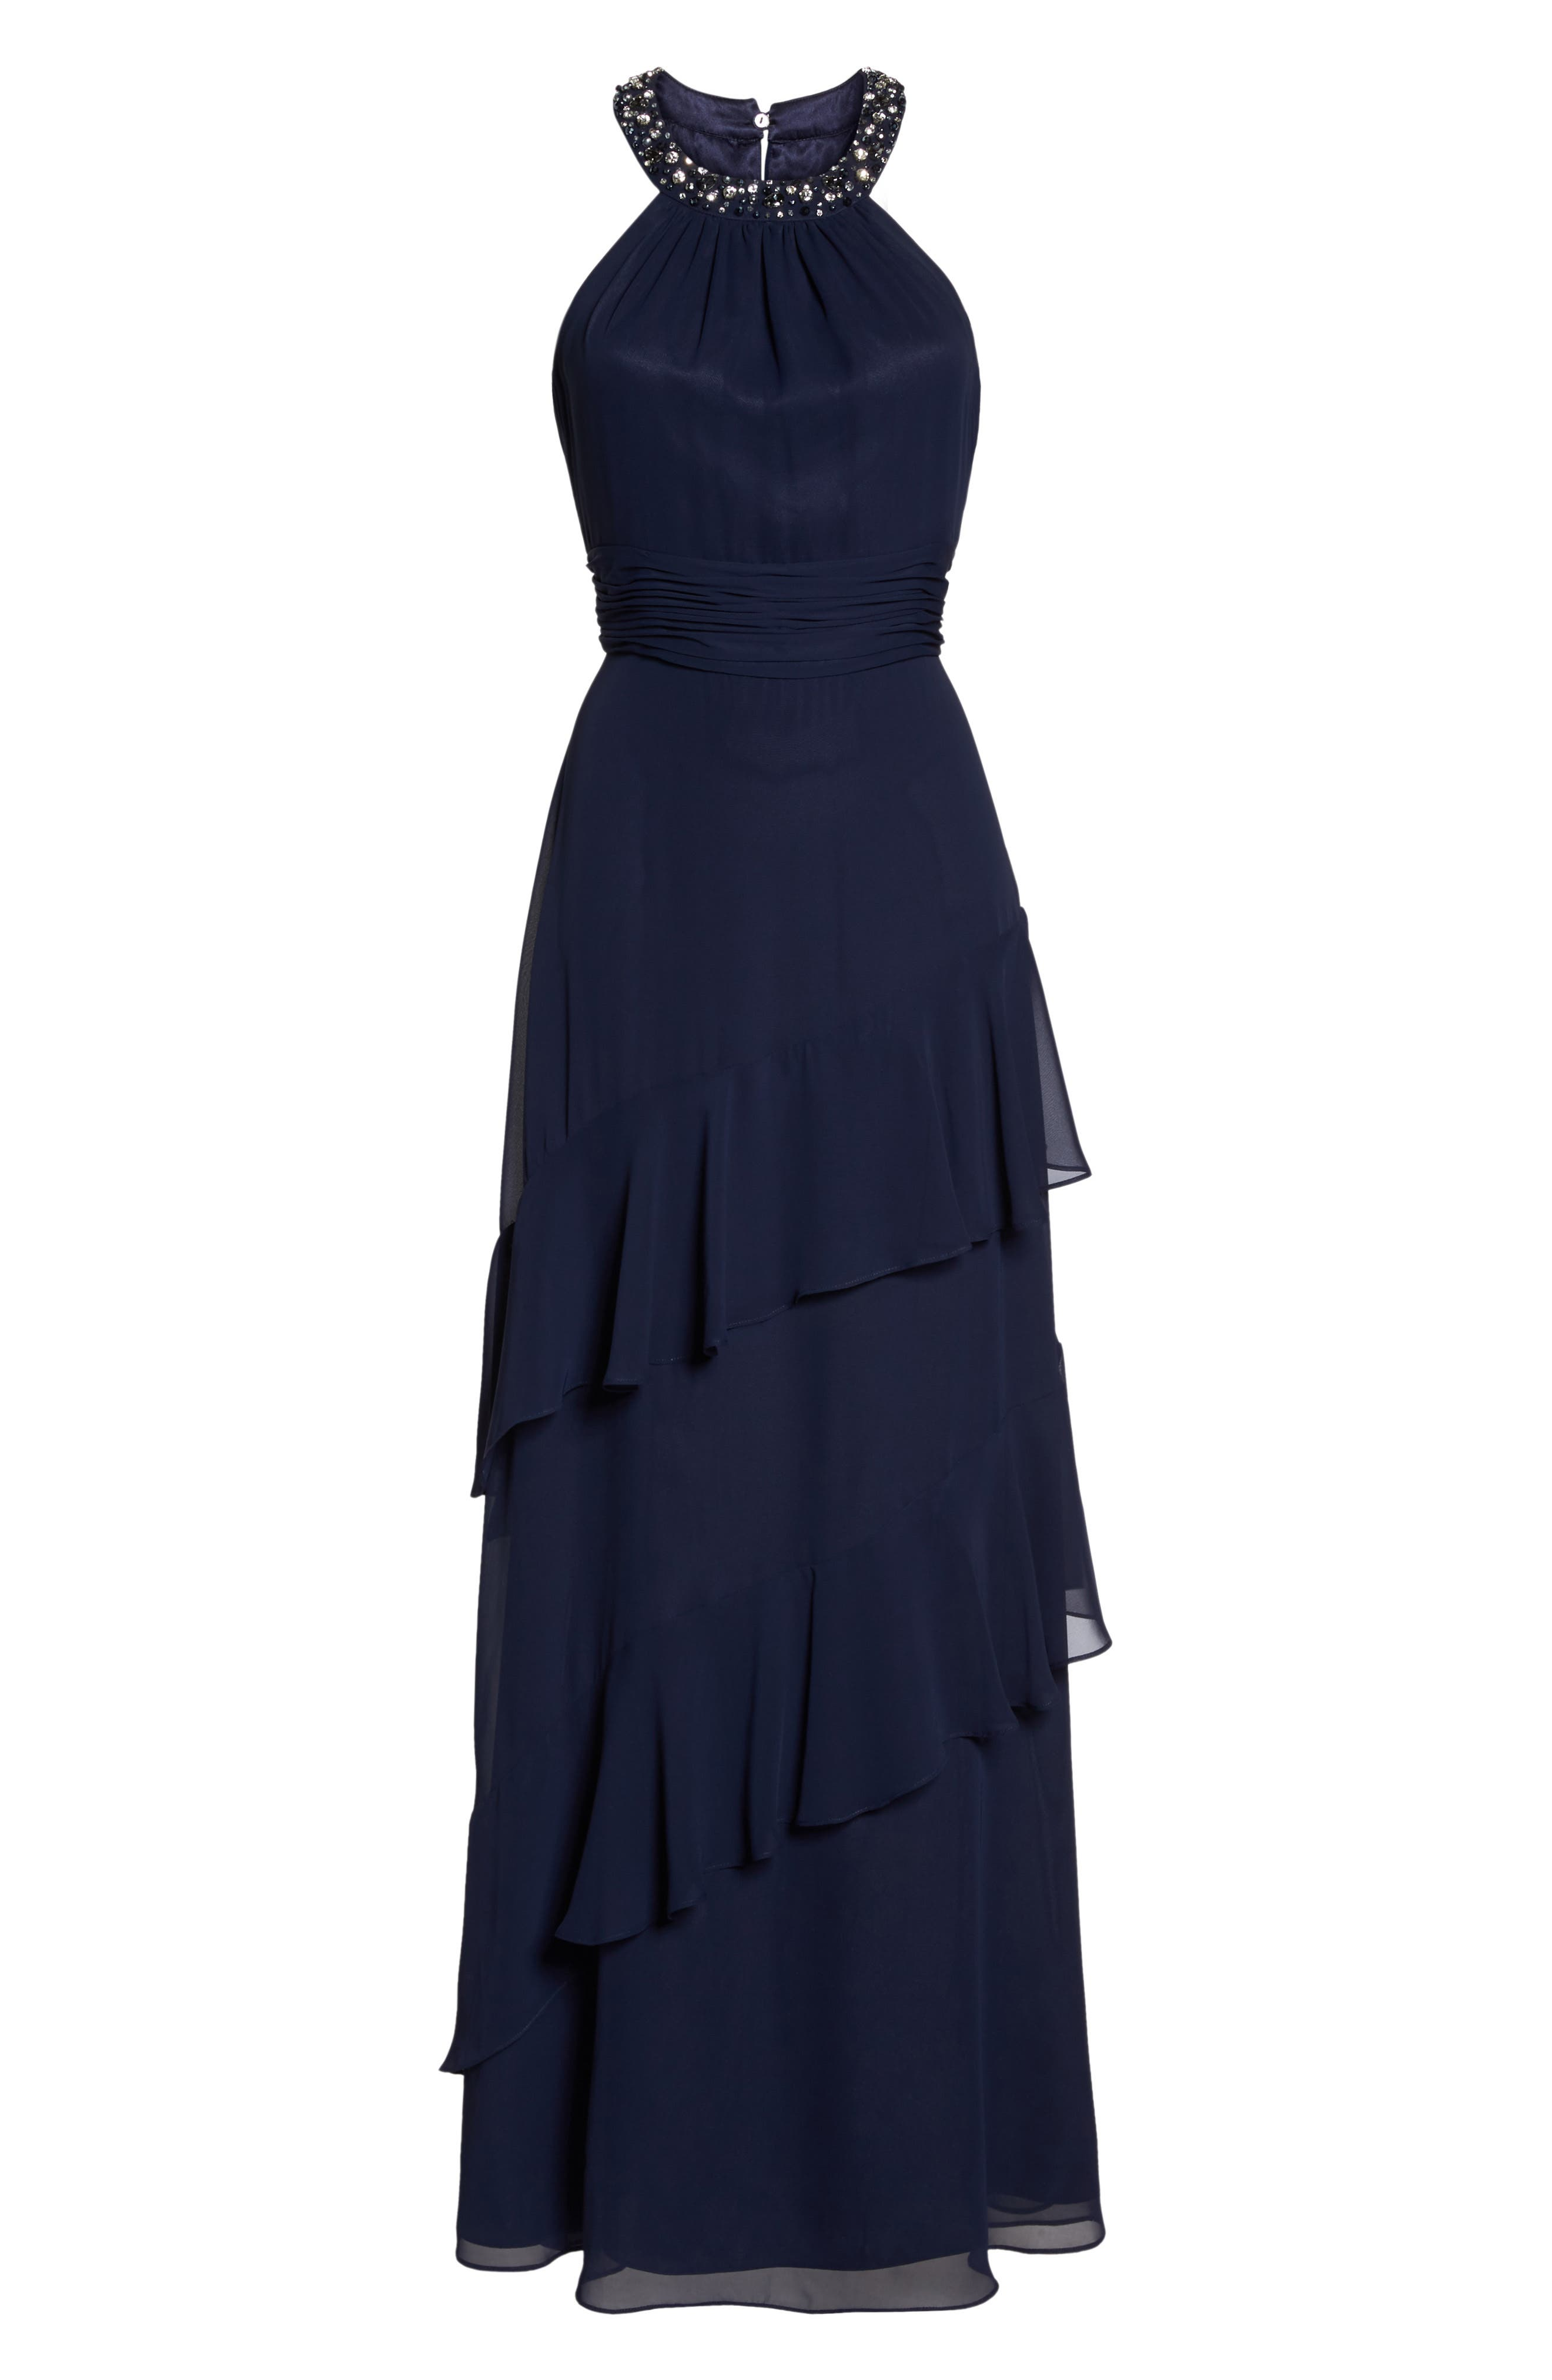 ELIZA J, Beaded Halter Tiered Chiffon Gown, Alternate thumbnail 7, color, NAVY